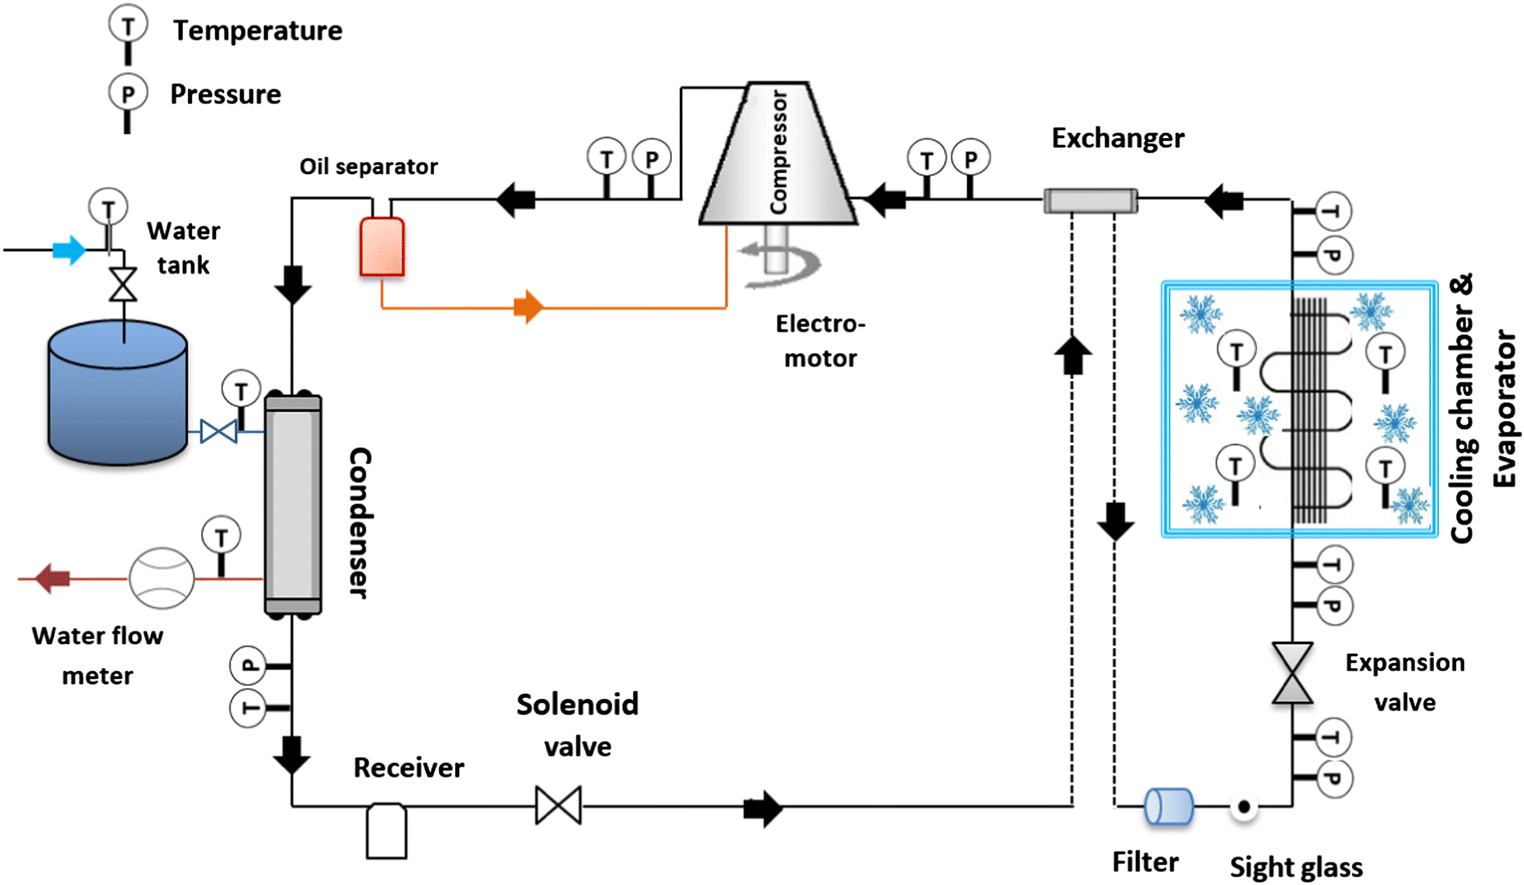 Thermodynamic Analysis Of A System Converted From Heat Pump To Fig1 Wiring Diagram For Typical Fridge Compressor Note The Over Fig 1 Schematic